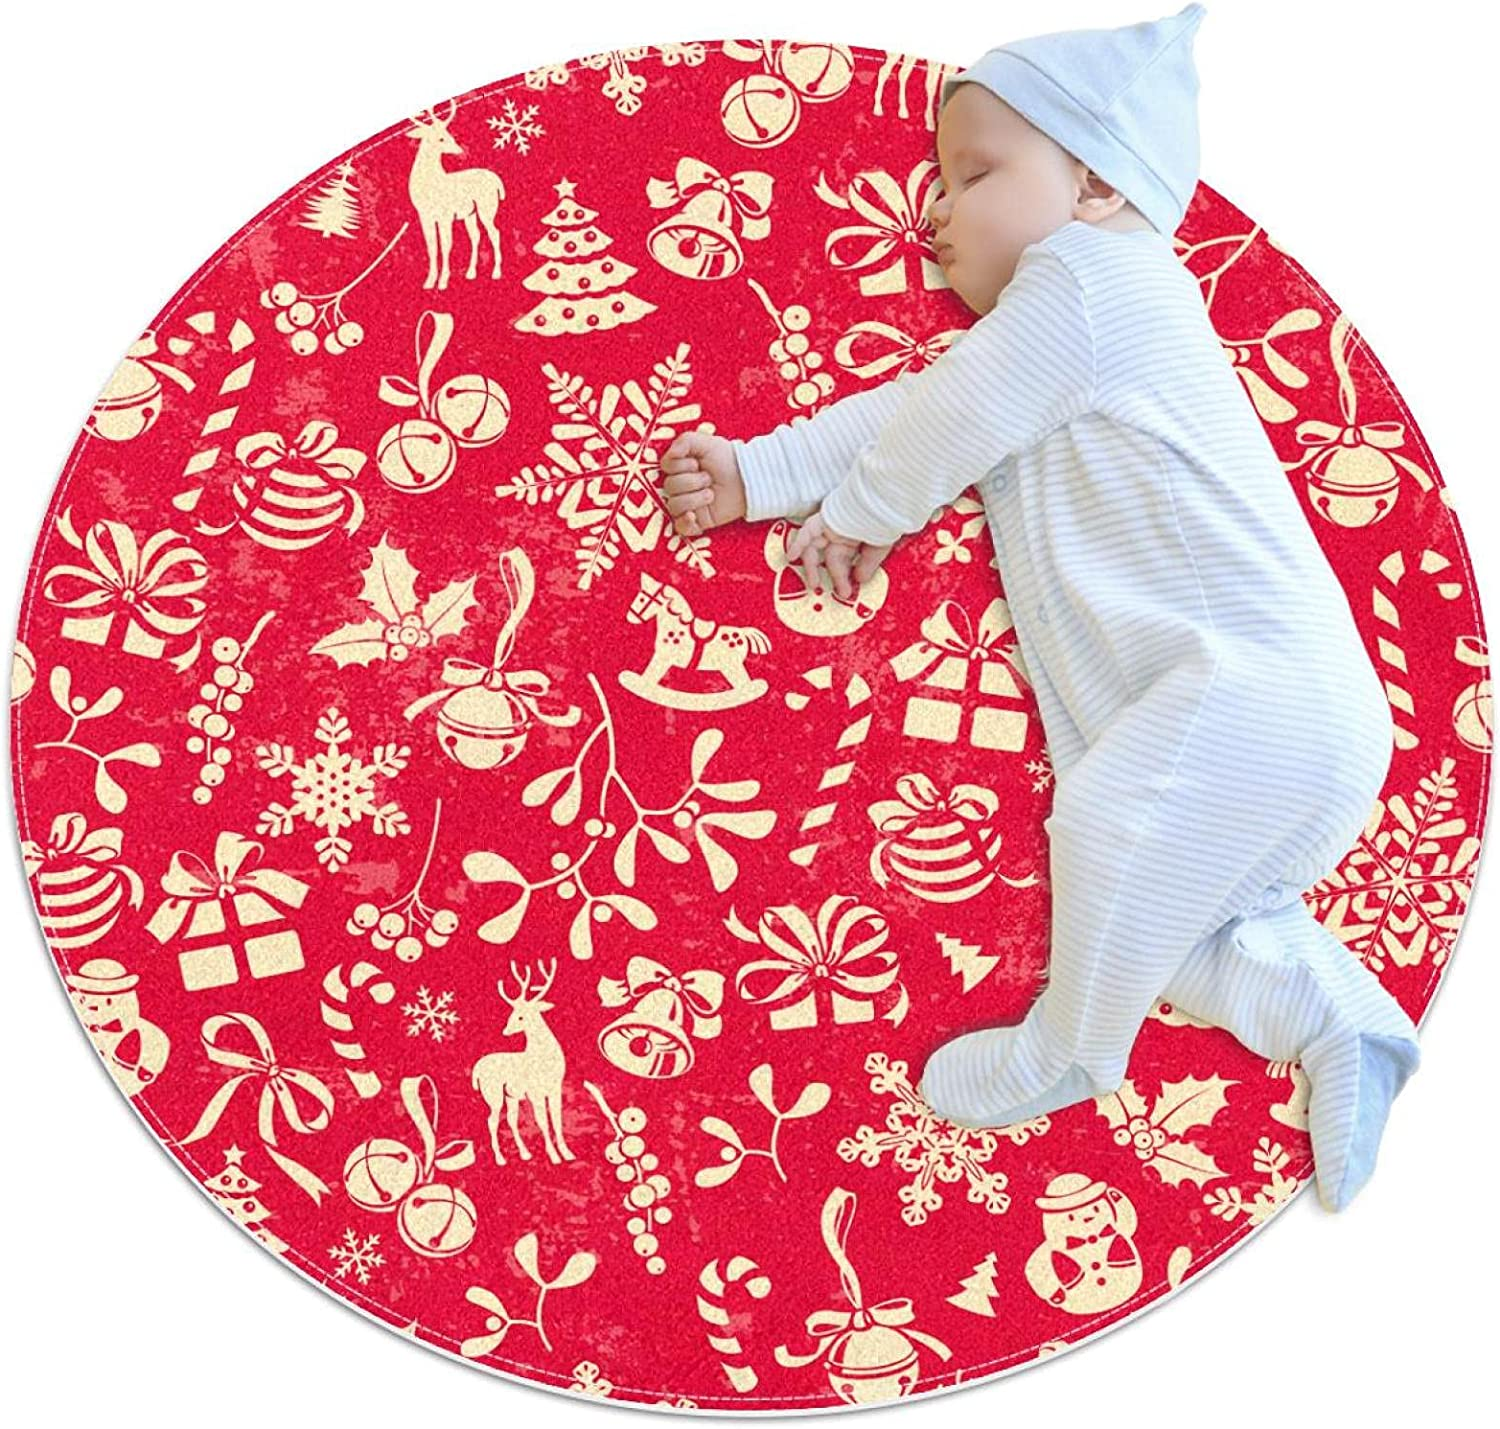 Red Max 85% OFF Christmas Elements Pattern Kids Floor Mat Playmat Max 83% OFF Crawling